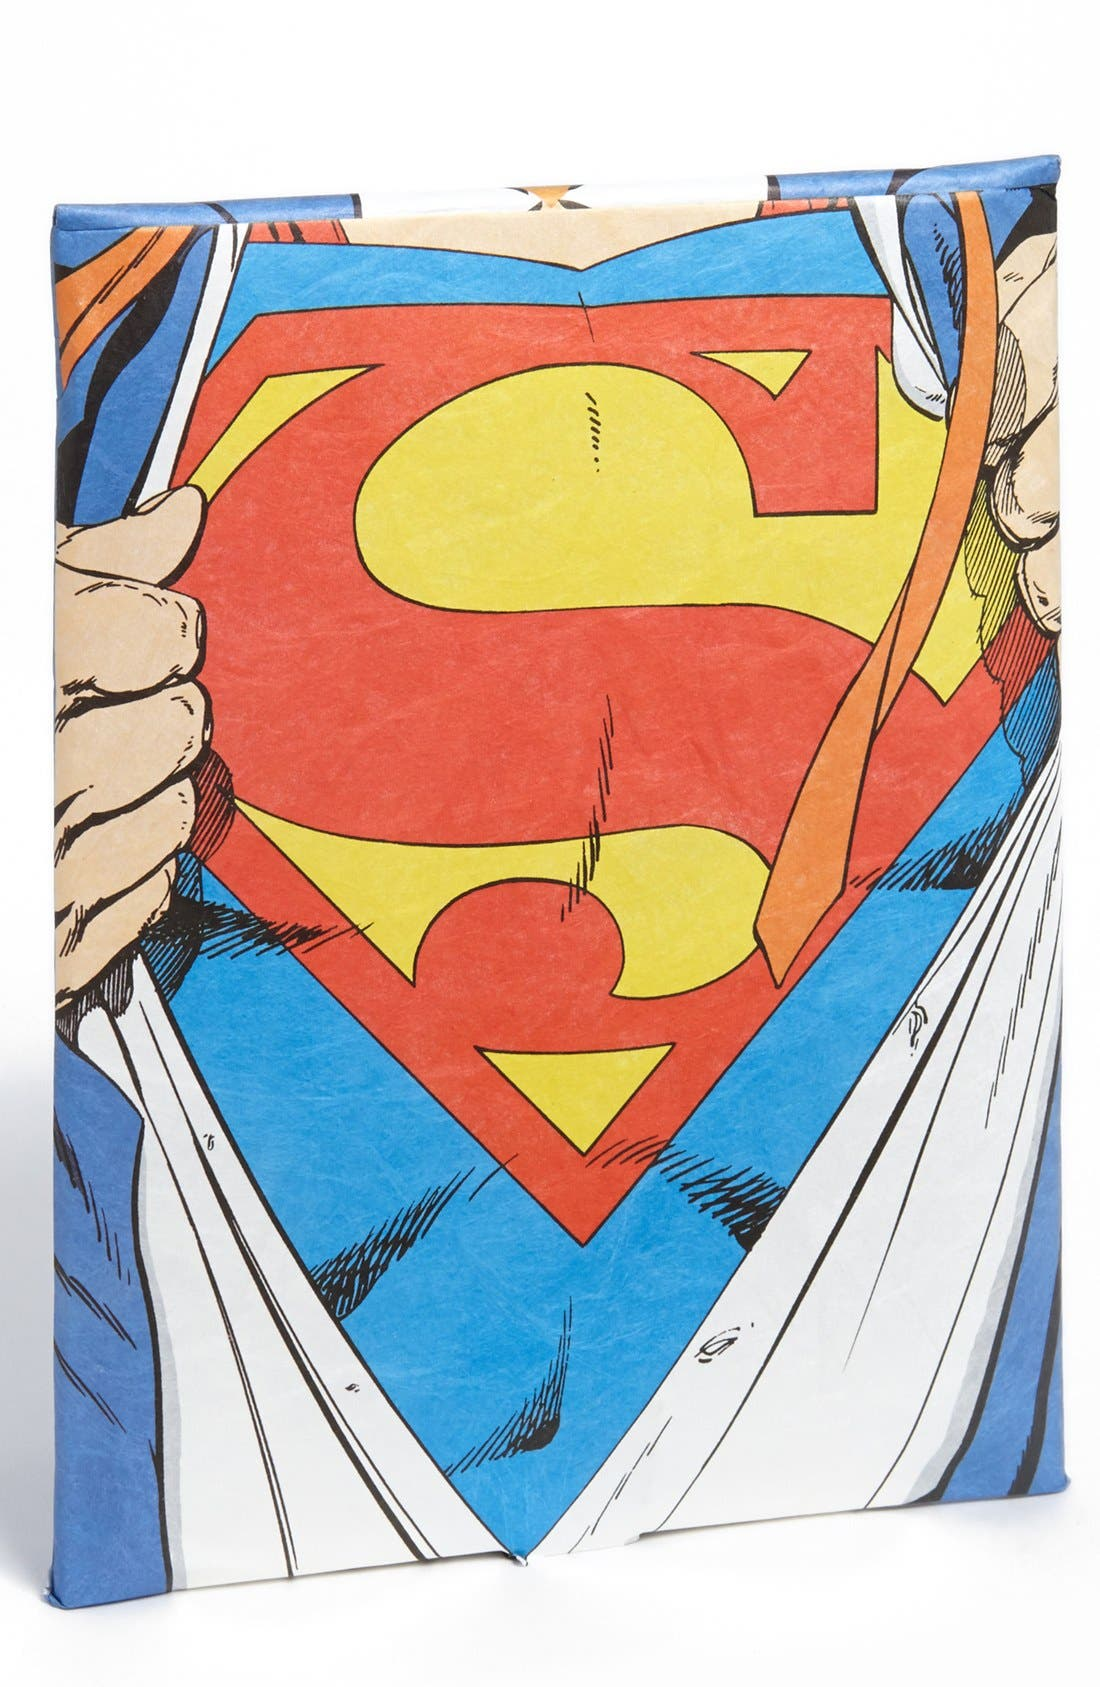 Alternate Image 1 Selected - Mighty Wallet Superman Tablet Case